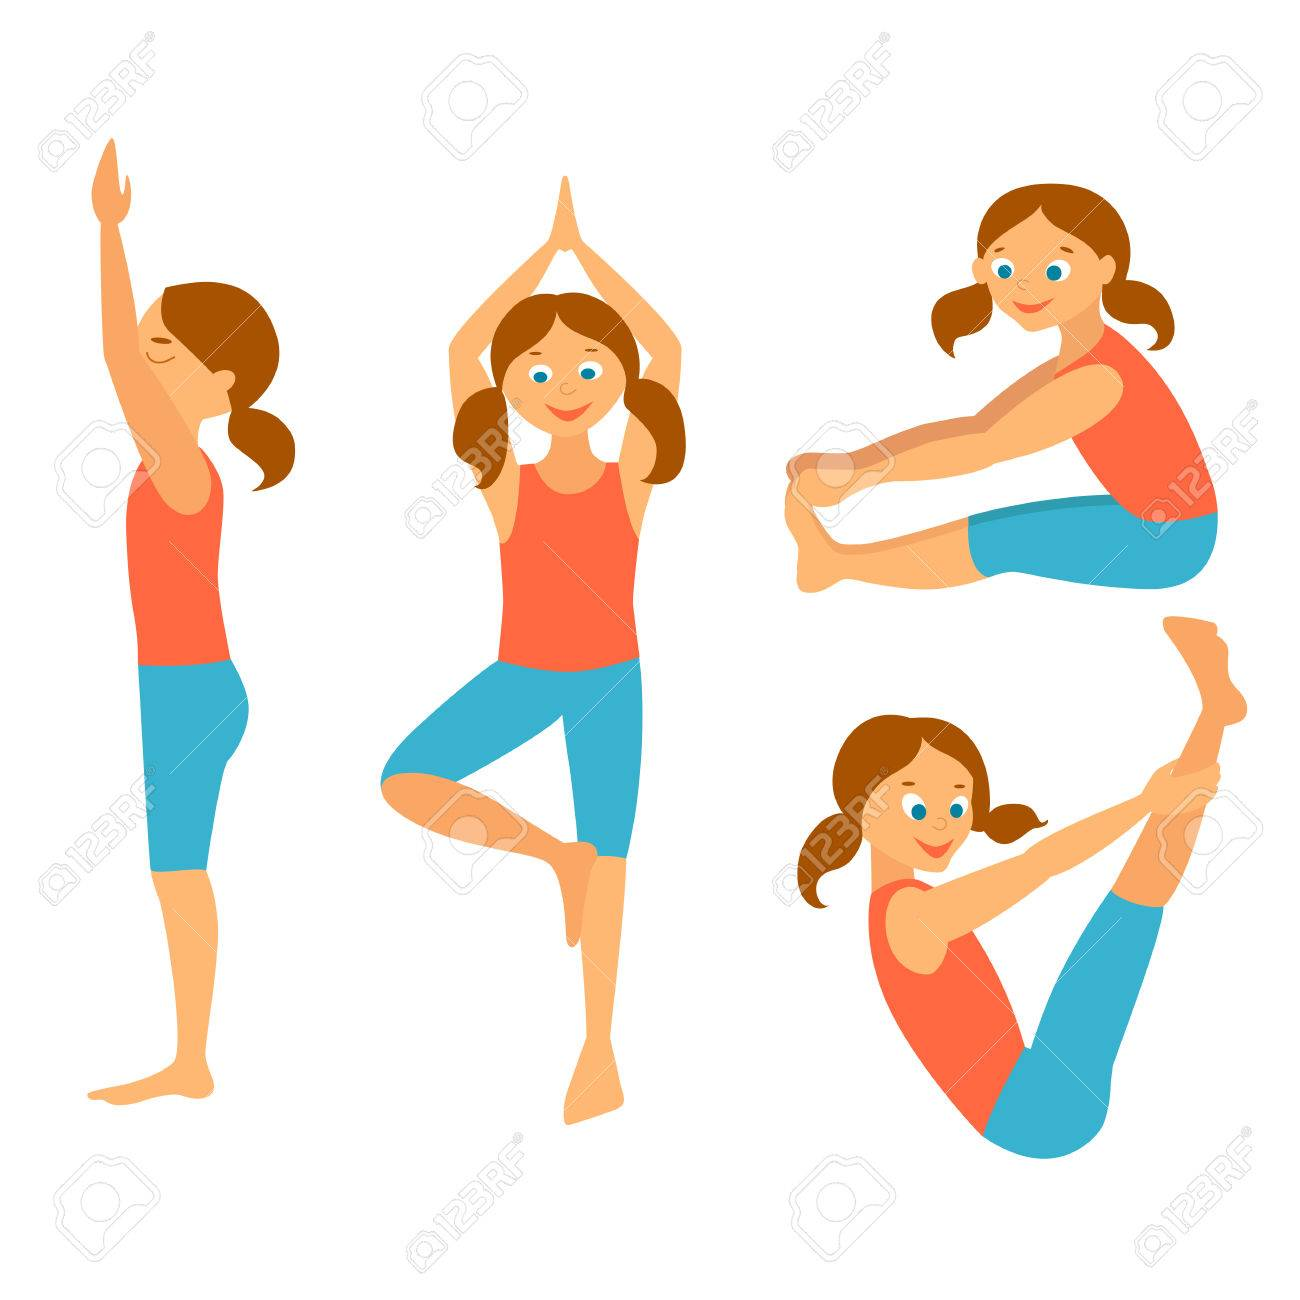 Yoga Kids Set Vector Illustration Yoga Asanas Exercises For Royalty Free Cliparts Vectors And Stock Illustration Image 81002625